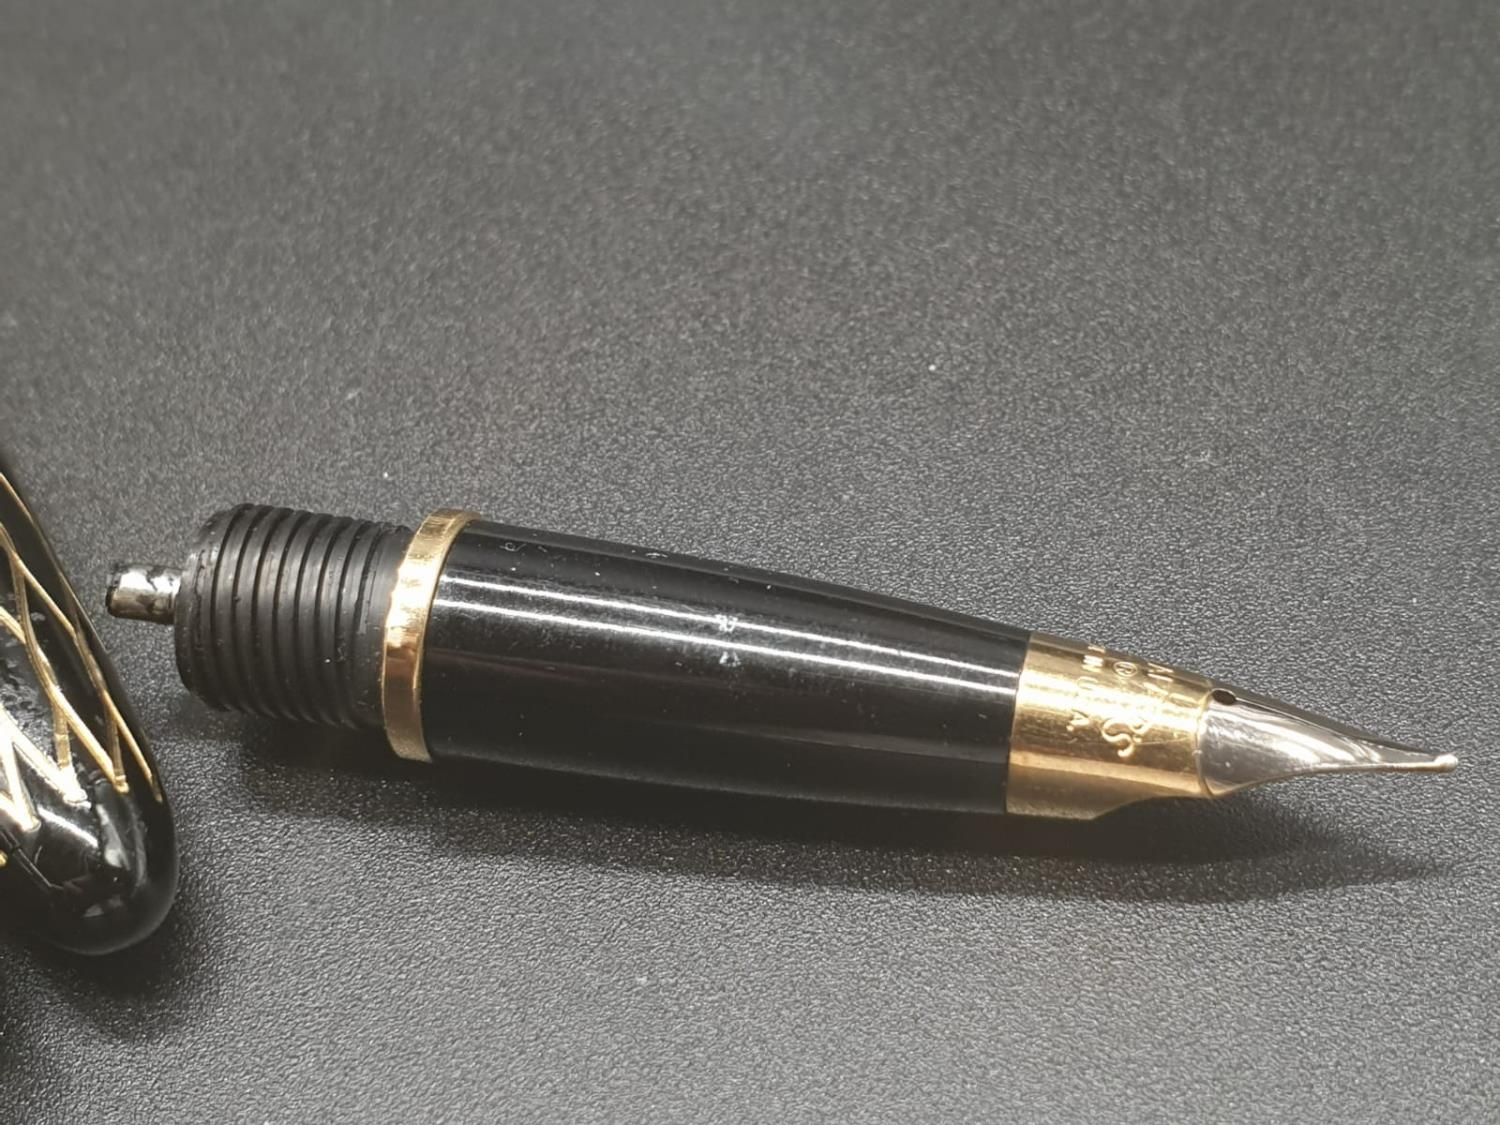 A 60?s vintage Lady Sheaffer fountain pen and mechanical pencil in excellent condition, in the - Image 7 of 11